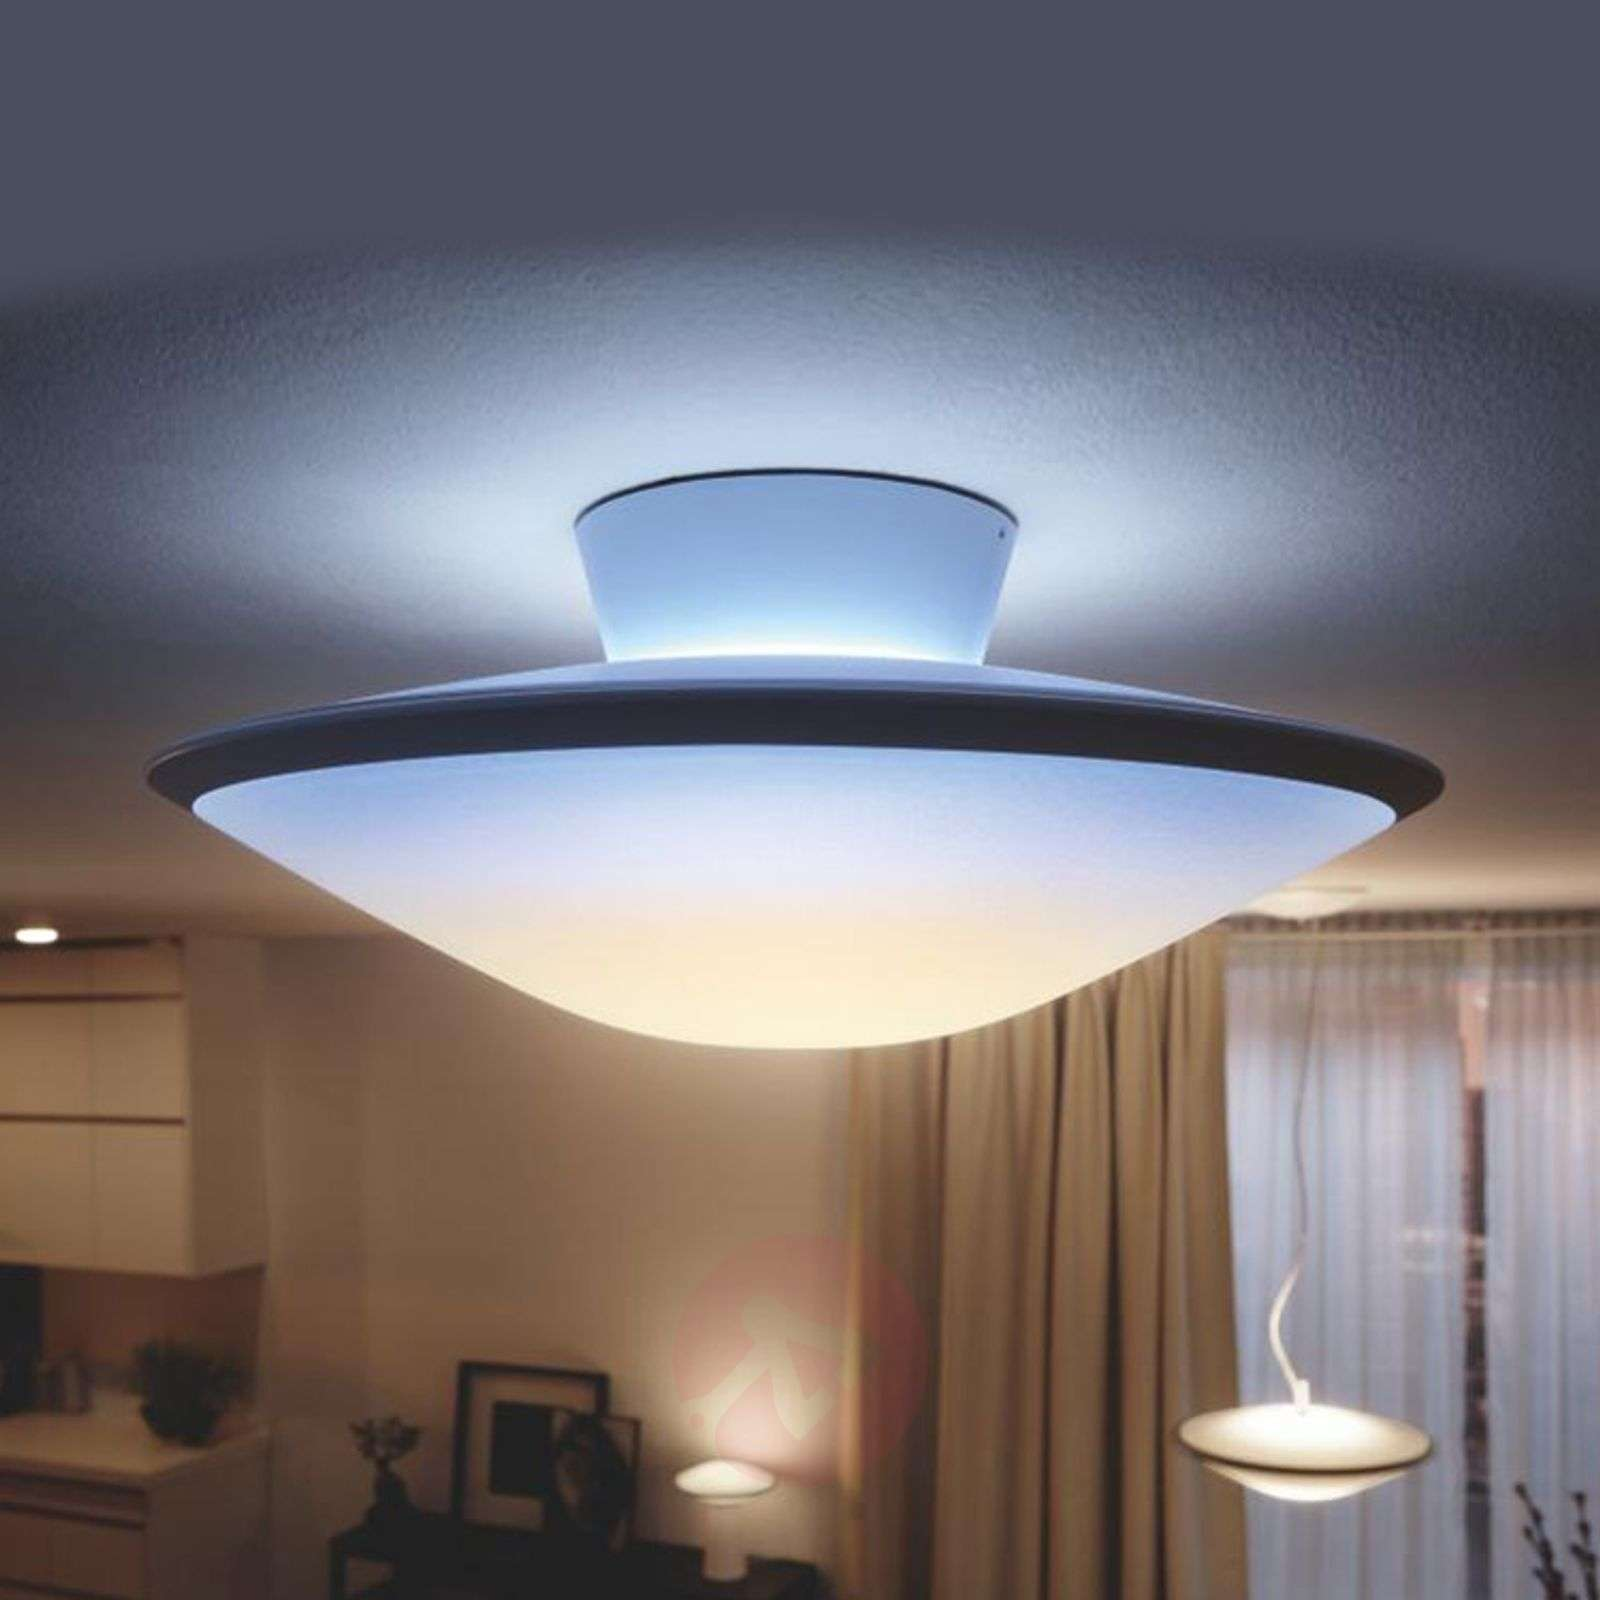 Led Ceiling Light Philips Hue Phoenix Lights Co Uk